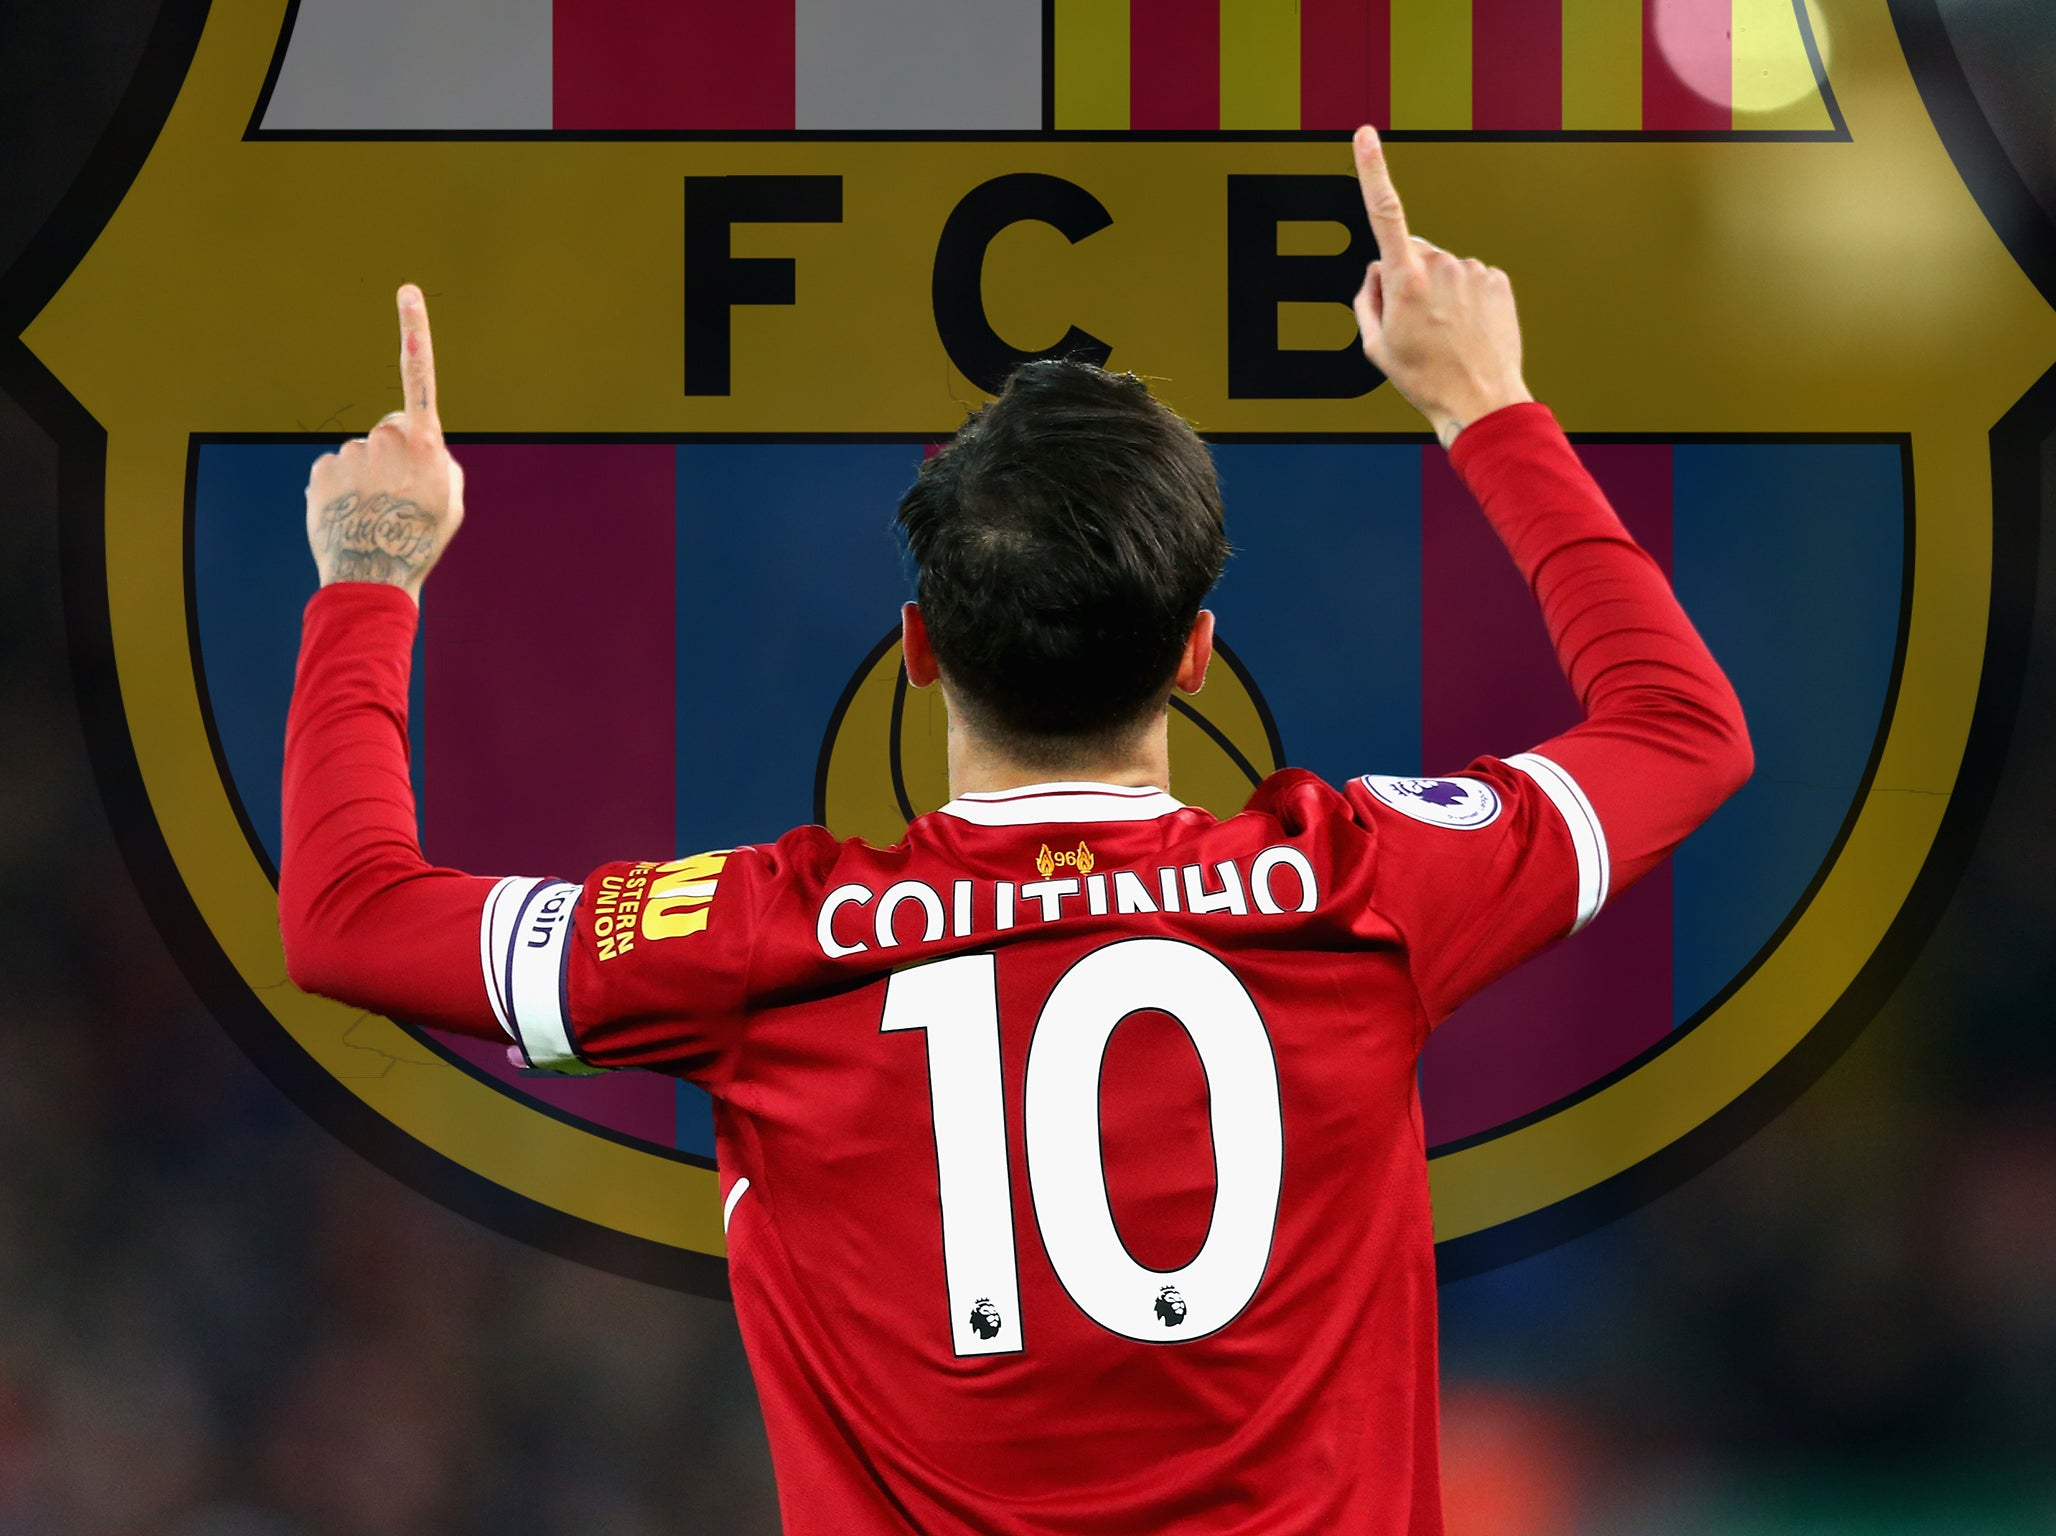 Philippe Coutinho's transfer from Liverpool to Barcelona could be officially confirmed by Monday